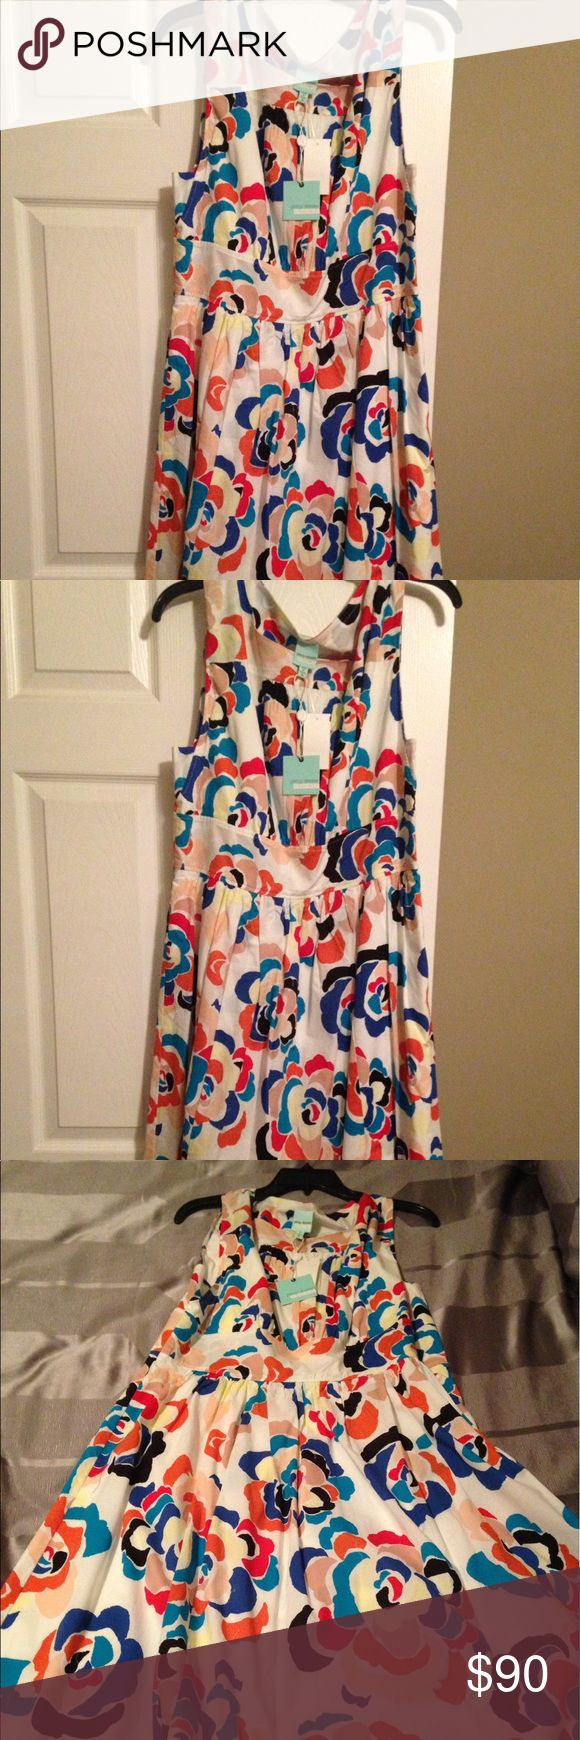 New multicolor flower Tracy Reese dress New multicolor flower Tracy Reese dress with front pockets. Never worn Tracy Reese Dresses